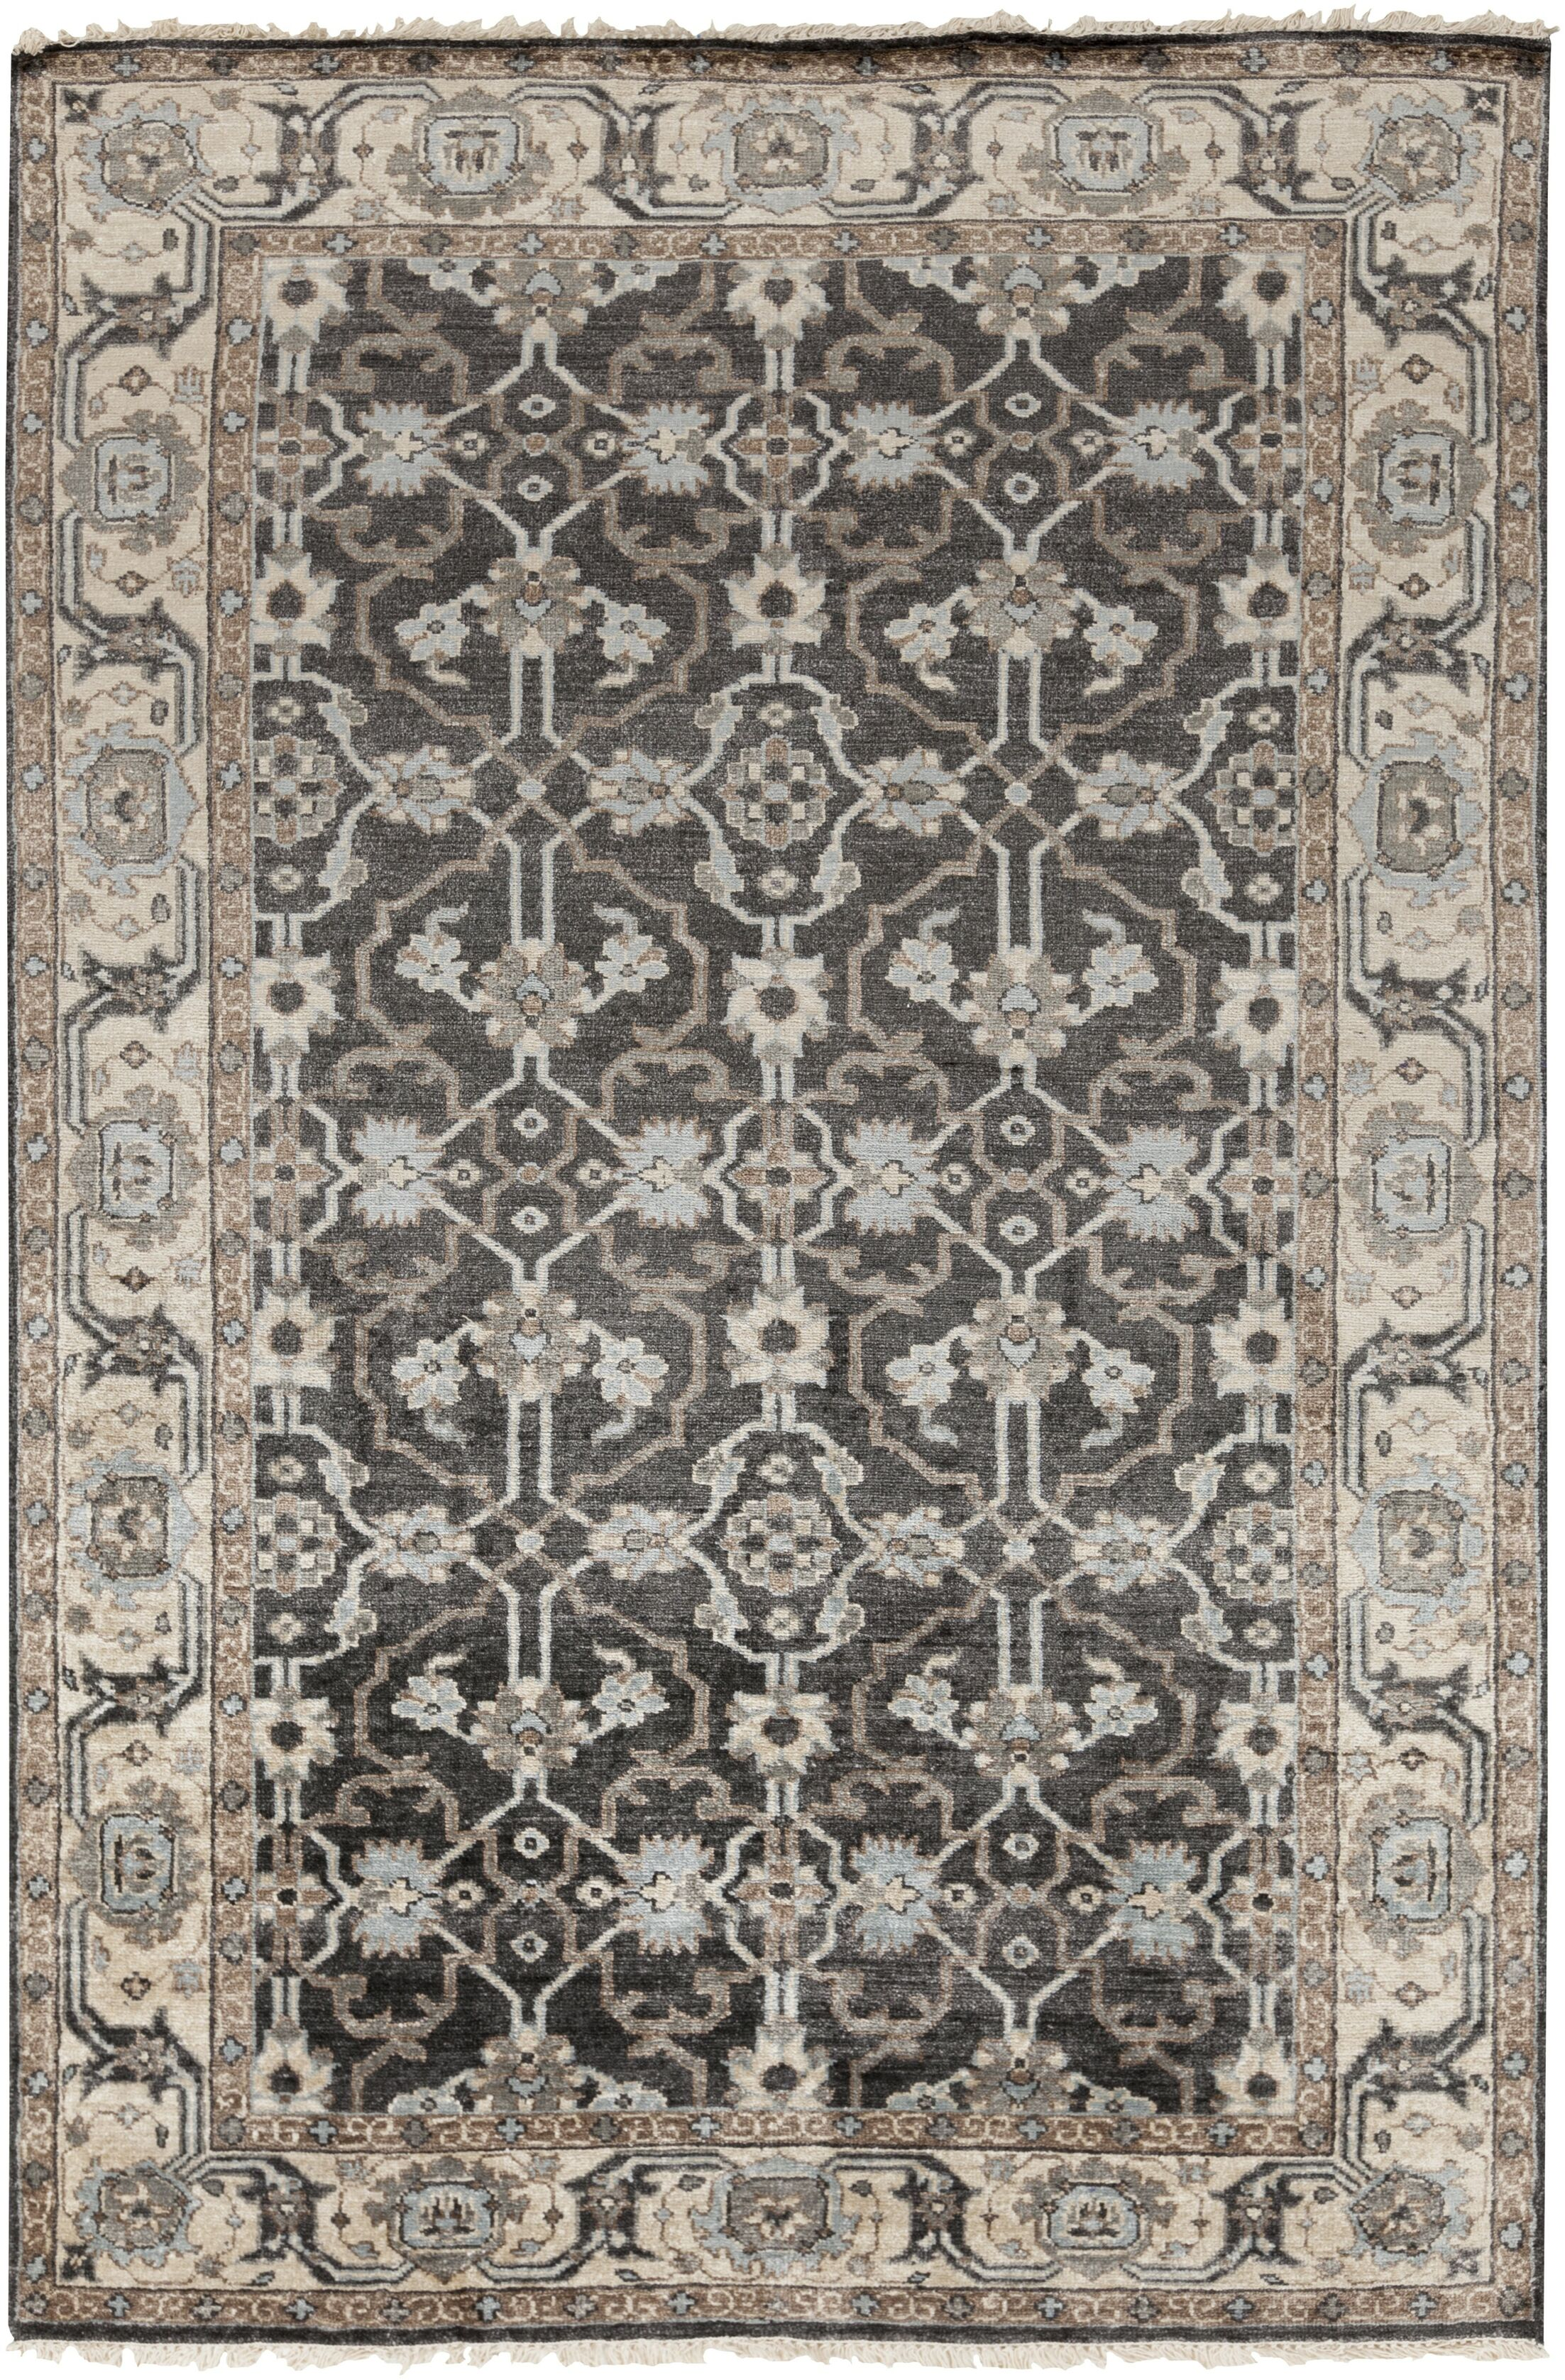 Gullette Hand Knotted Gray Area Rug Rug Size: Rectangle 5' x 8'